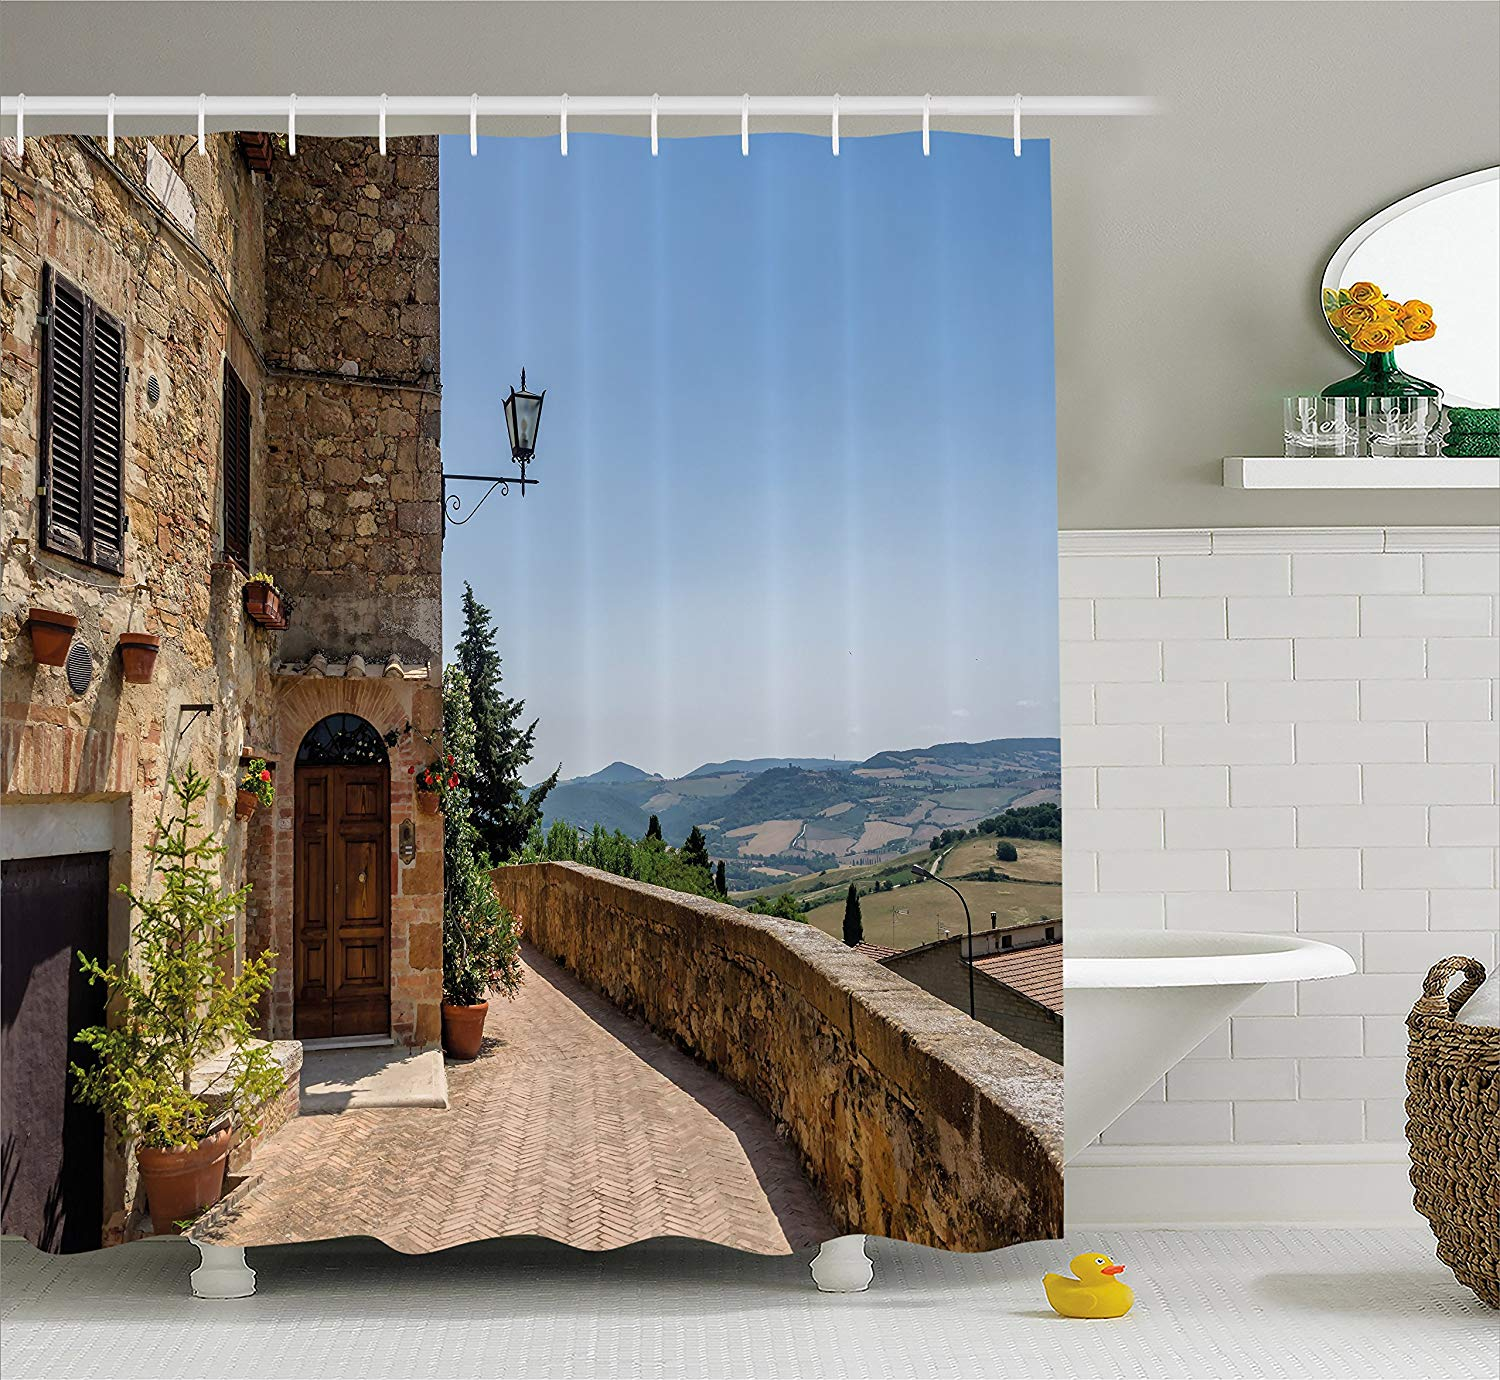 Ambesonne Italian Decor Shower Curtain The Walls of Pienza in Tuscany Historical European Landmark Fabric Bathroom Decor Set with Hooks Light Brown Green Light Blue 70 Inches